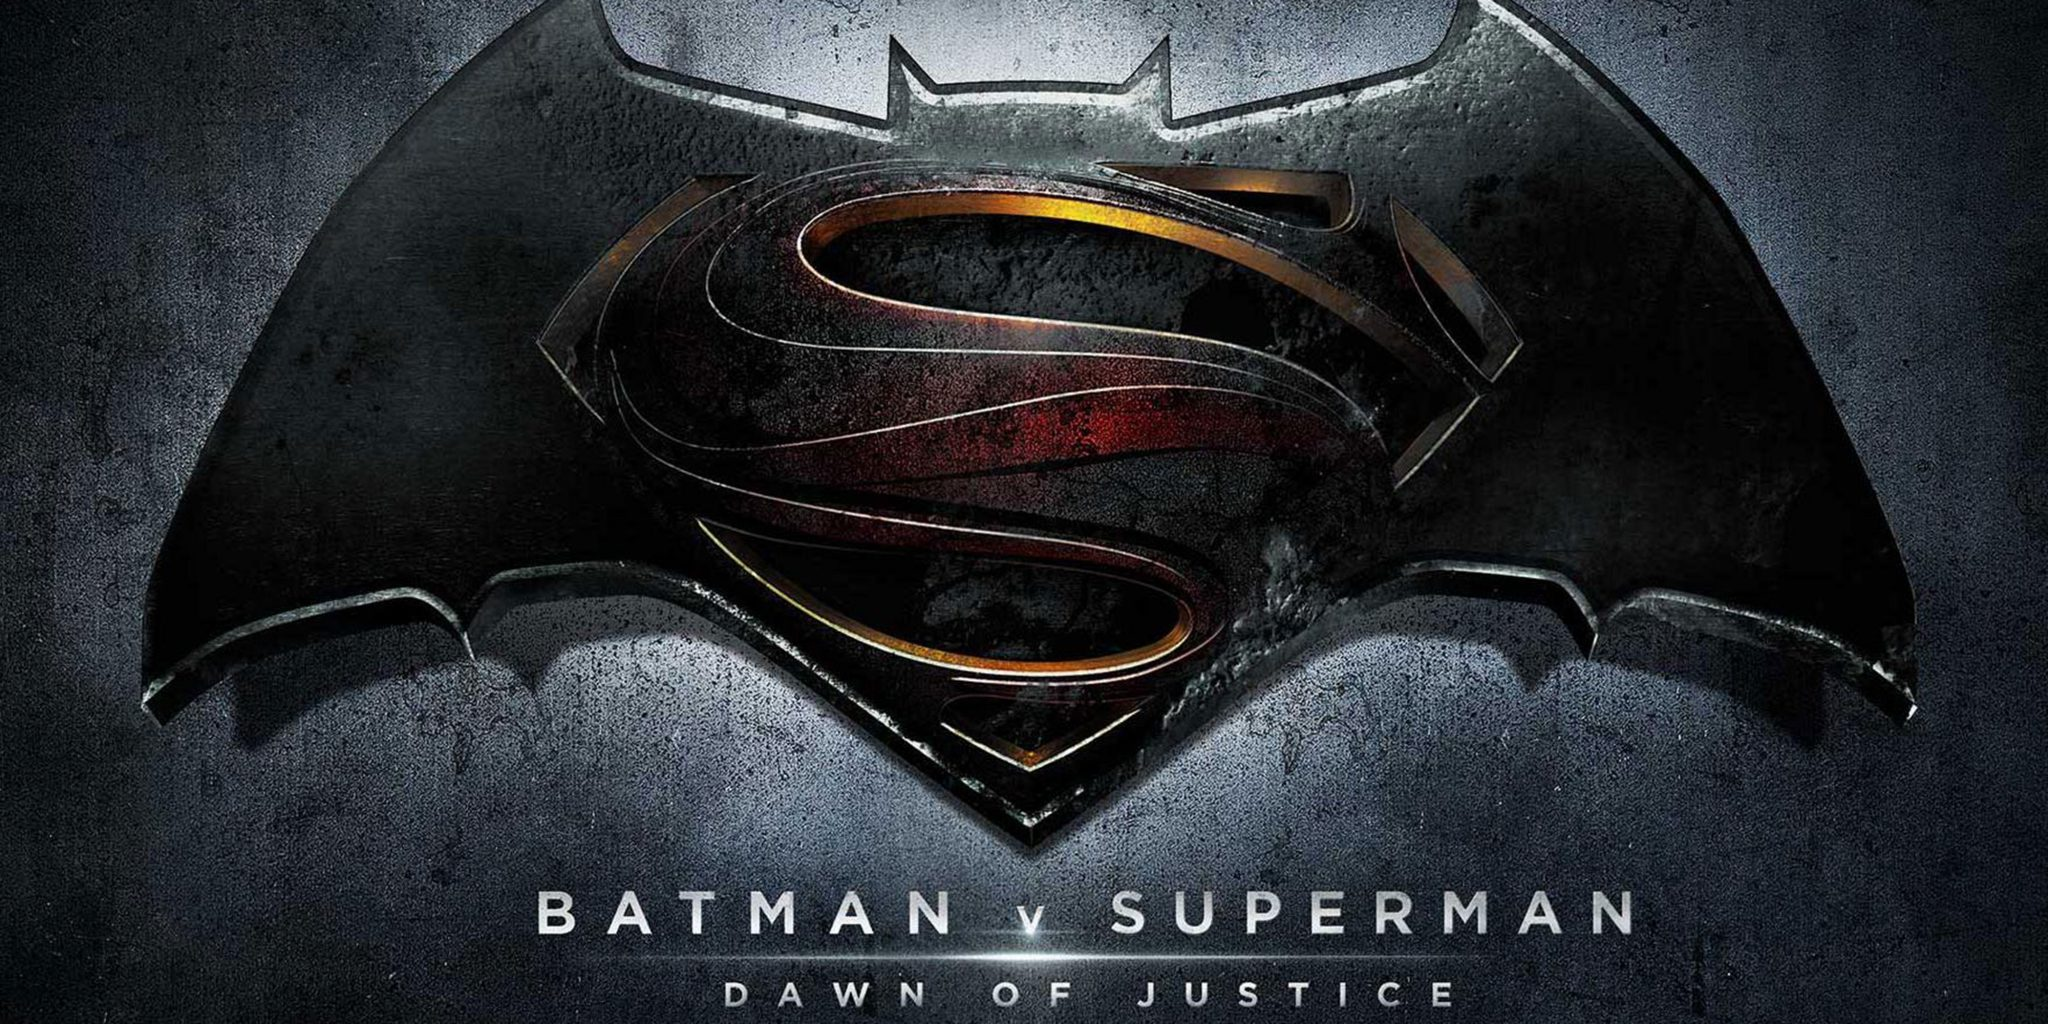 Zack Snyder teases Batman v Superman trailer in new video